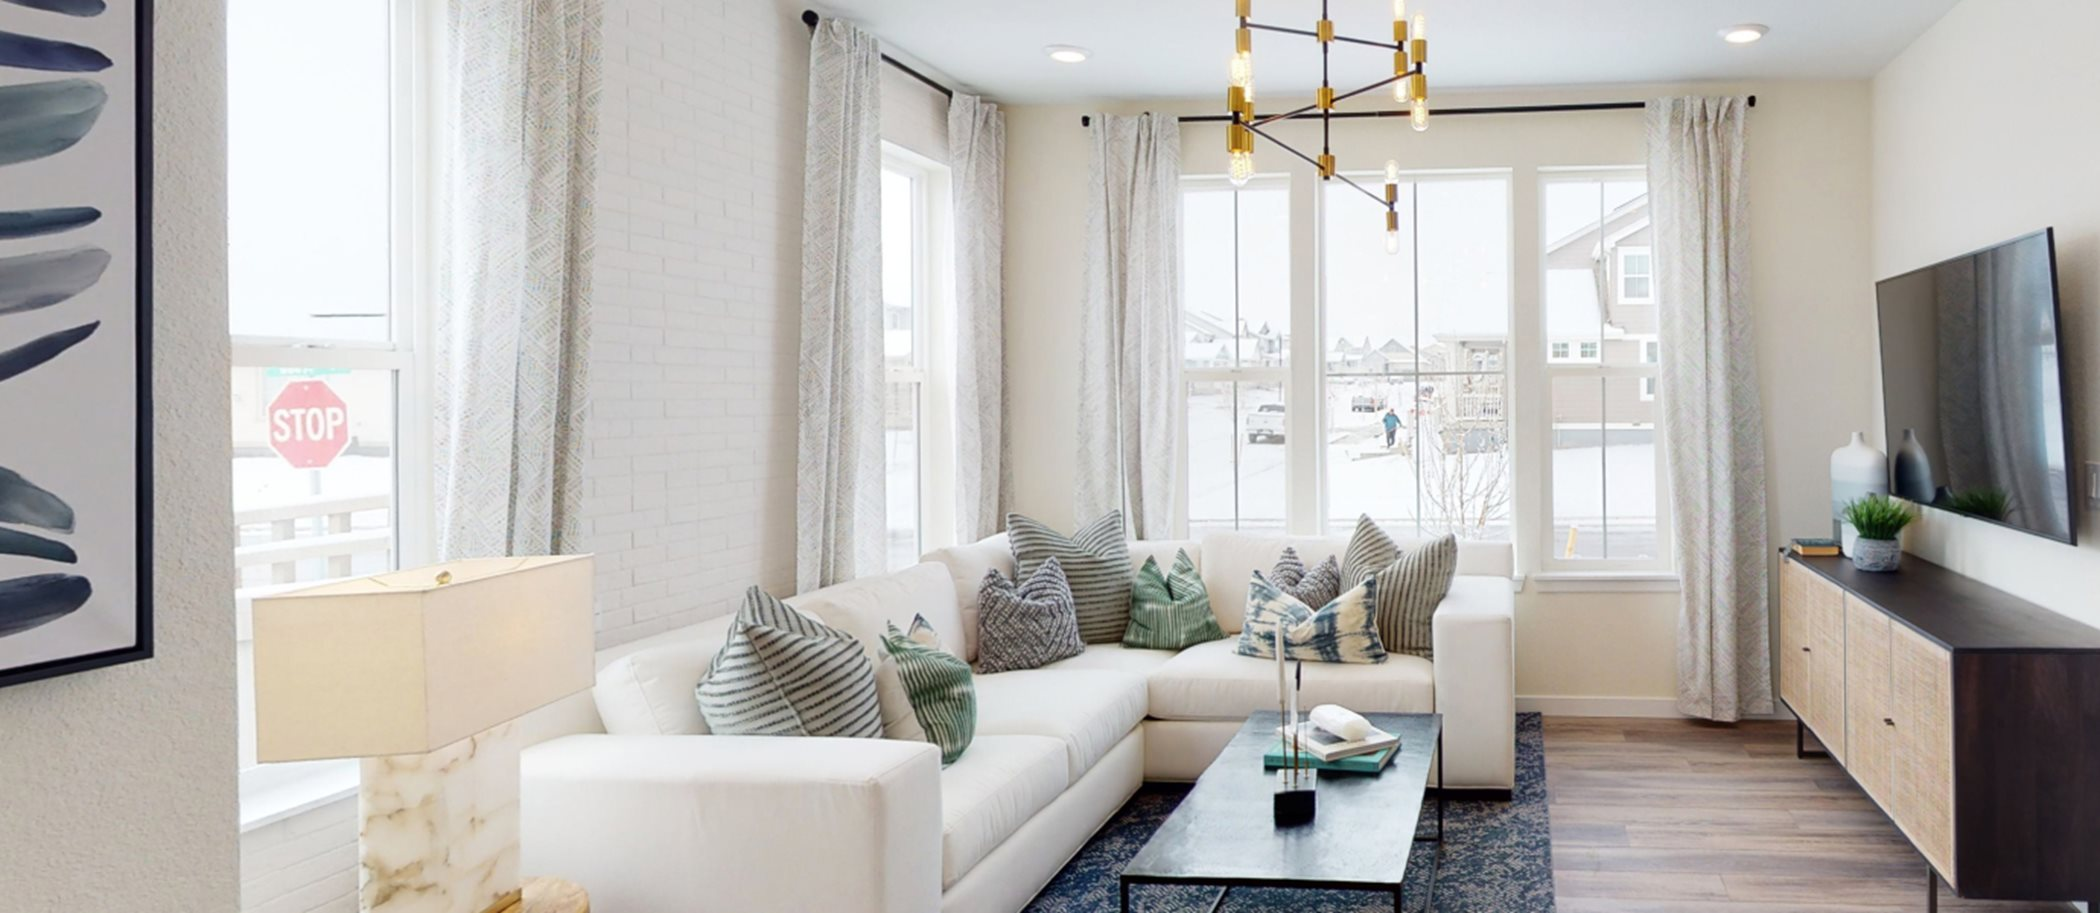 Palisade-Park Paired Homes Vibrant- Right Room